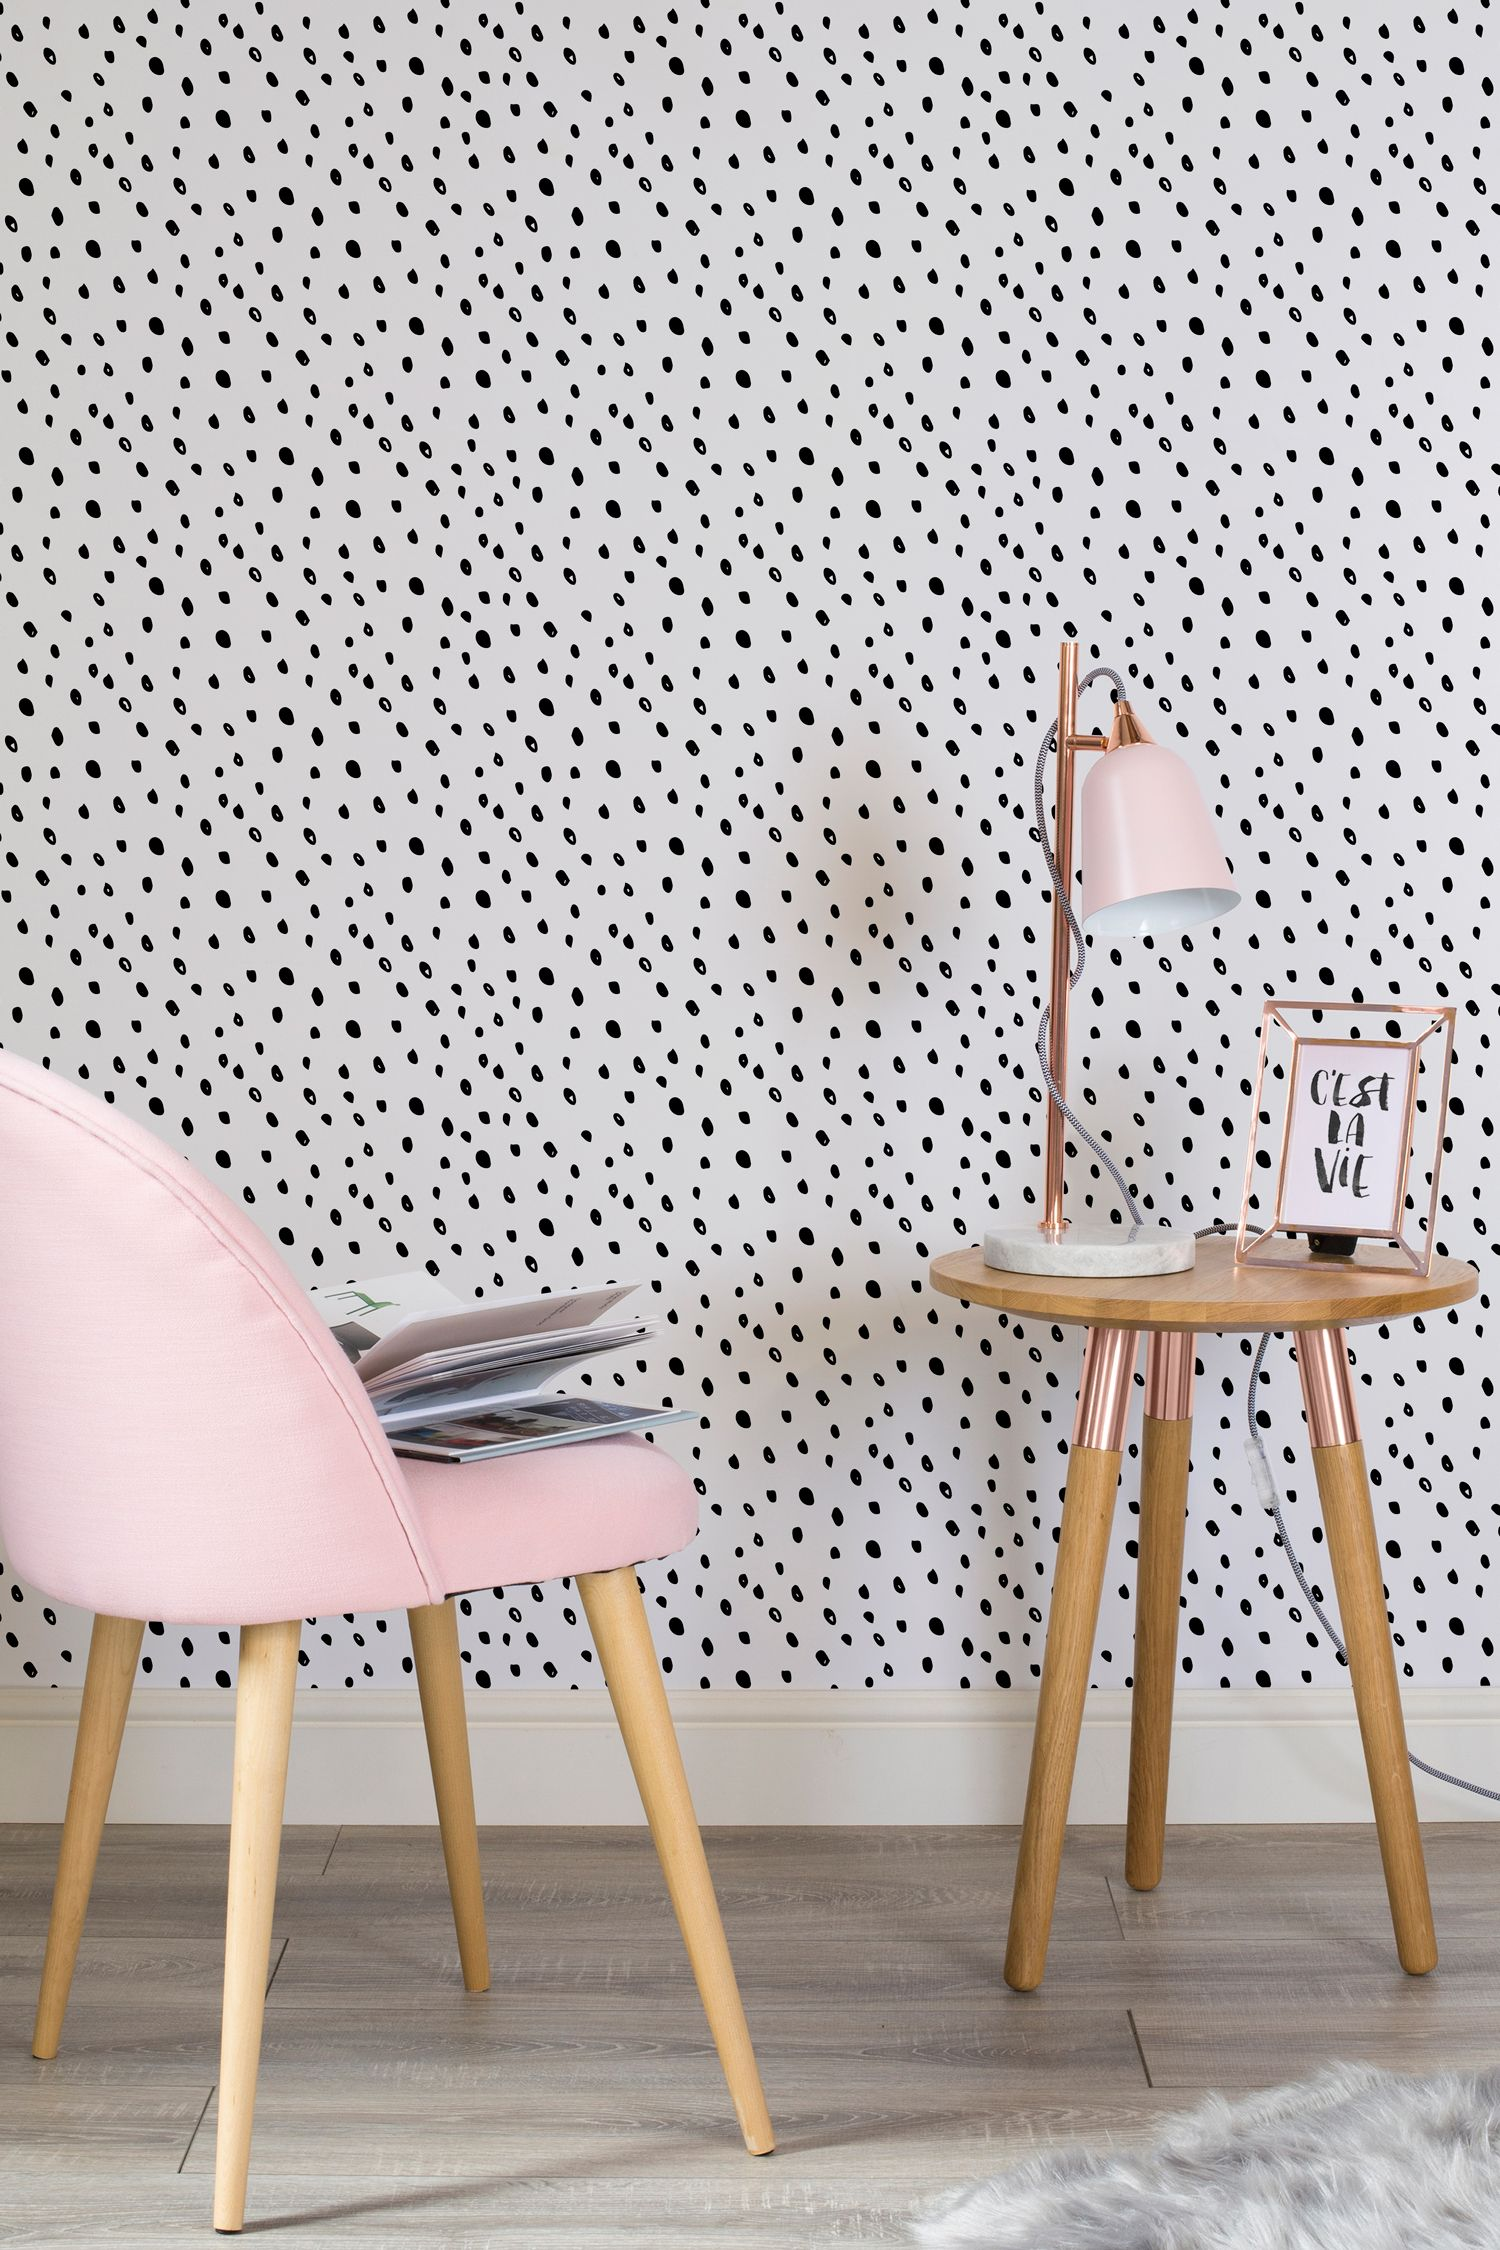 black and white wallpaper ideas for living room decorating with dark grey sofa spotty speckle wall mural home reno pinterest this design is both girly chic working wonderfully in modern spaces as well offices